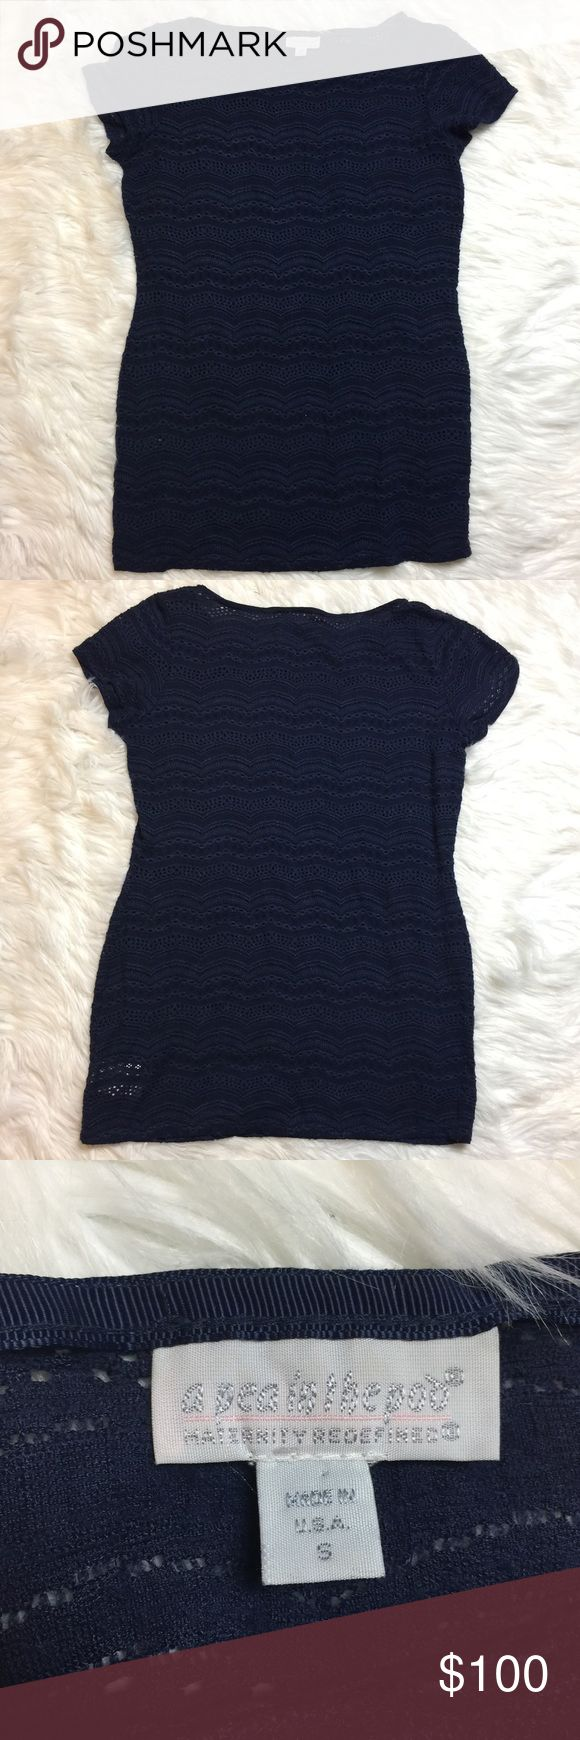 •• A PEA IN THE POD • Knit Maternity Blouse A PEA IN THE POD blue knit short sleeve Maternity Blouse Small  Product Details Achieve a chic and comfy casual look with A Pea in the Pod's maternity knit blouse. Style it with your favorite a blazer, jeans, and boots. Round neckline Blue  Size Small Pullover style Short Sleeve  Hits below hips Maternity Blouse  Imported Please inspect all pictures prior to purchase and message me with any questions you have. Coming from a pet free smoke free…